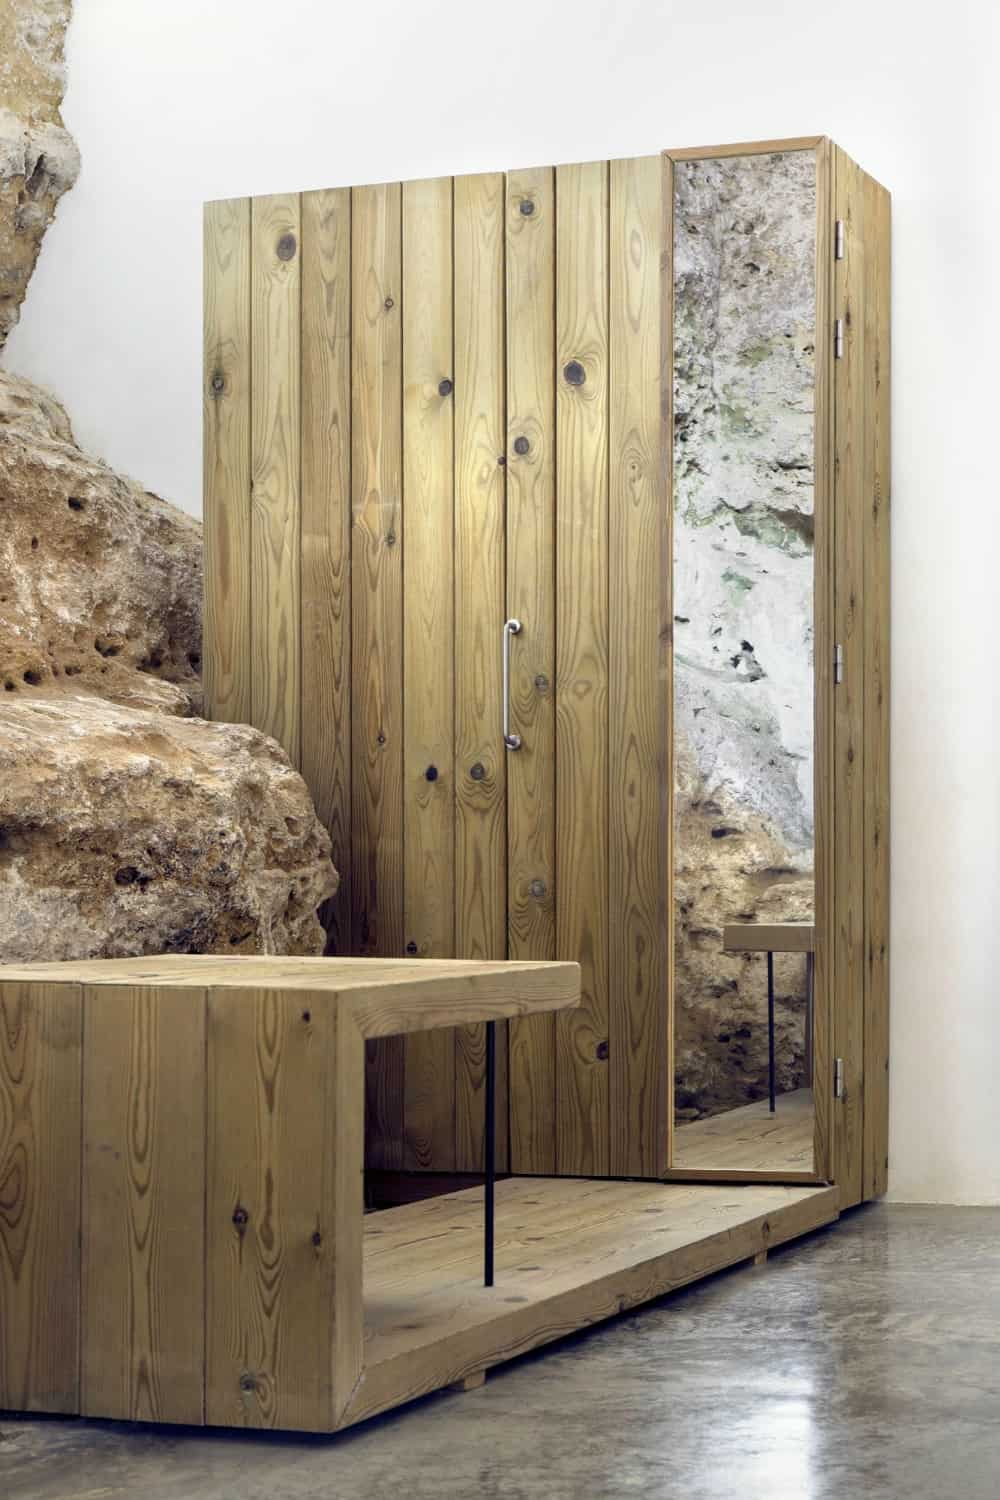 Natural wood wardrobe comes with an extension